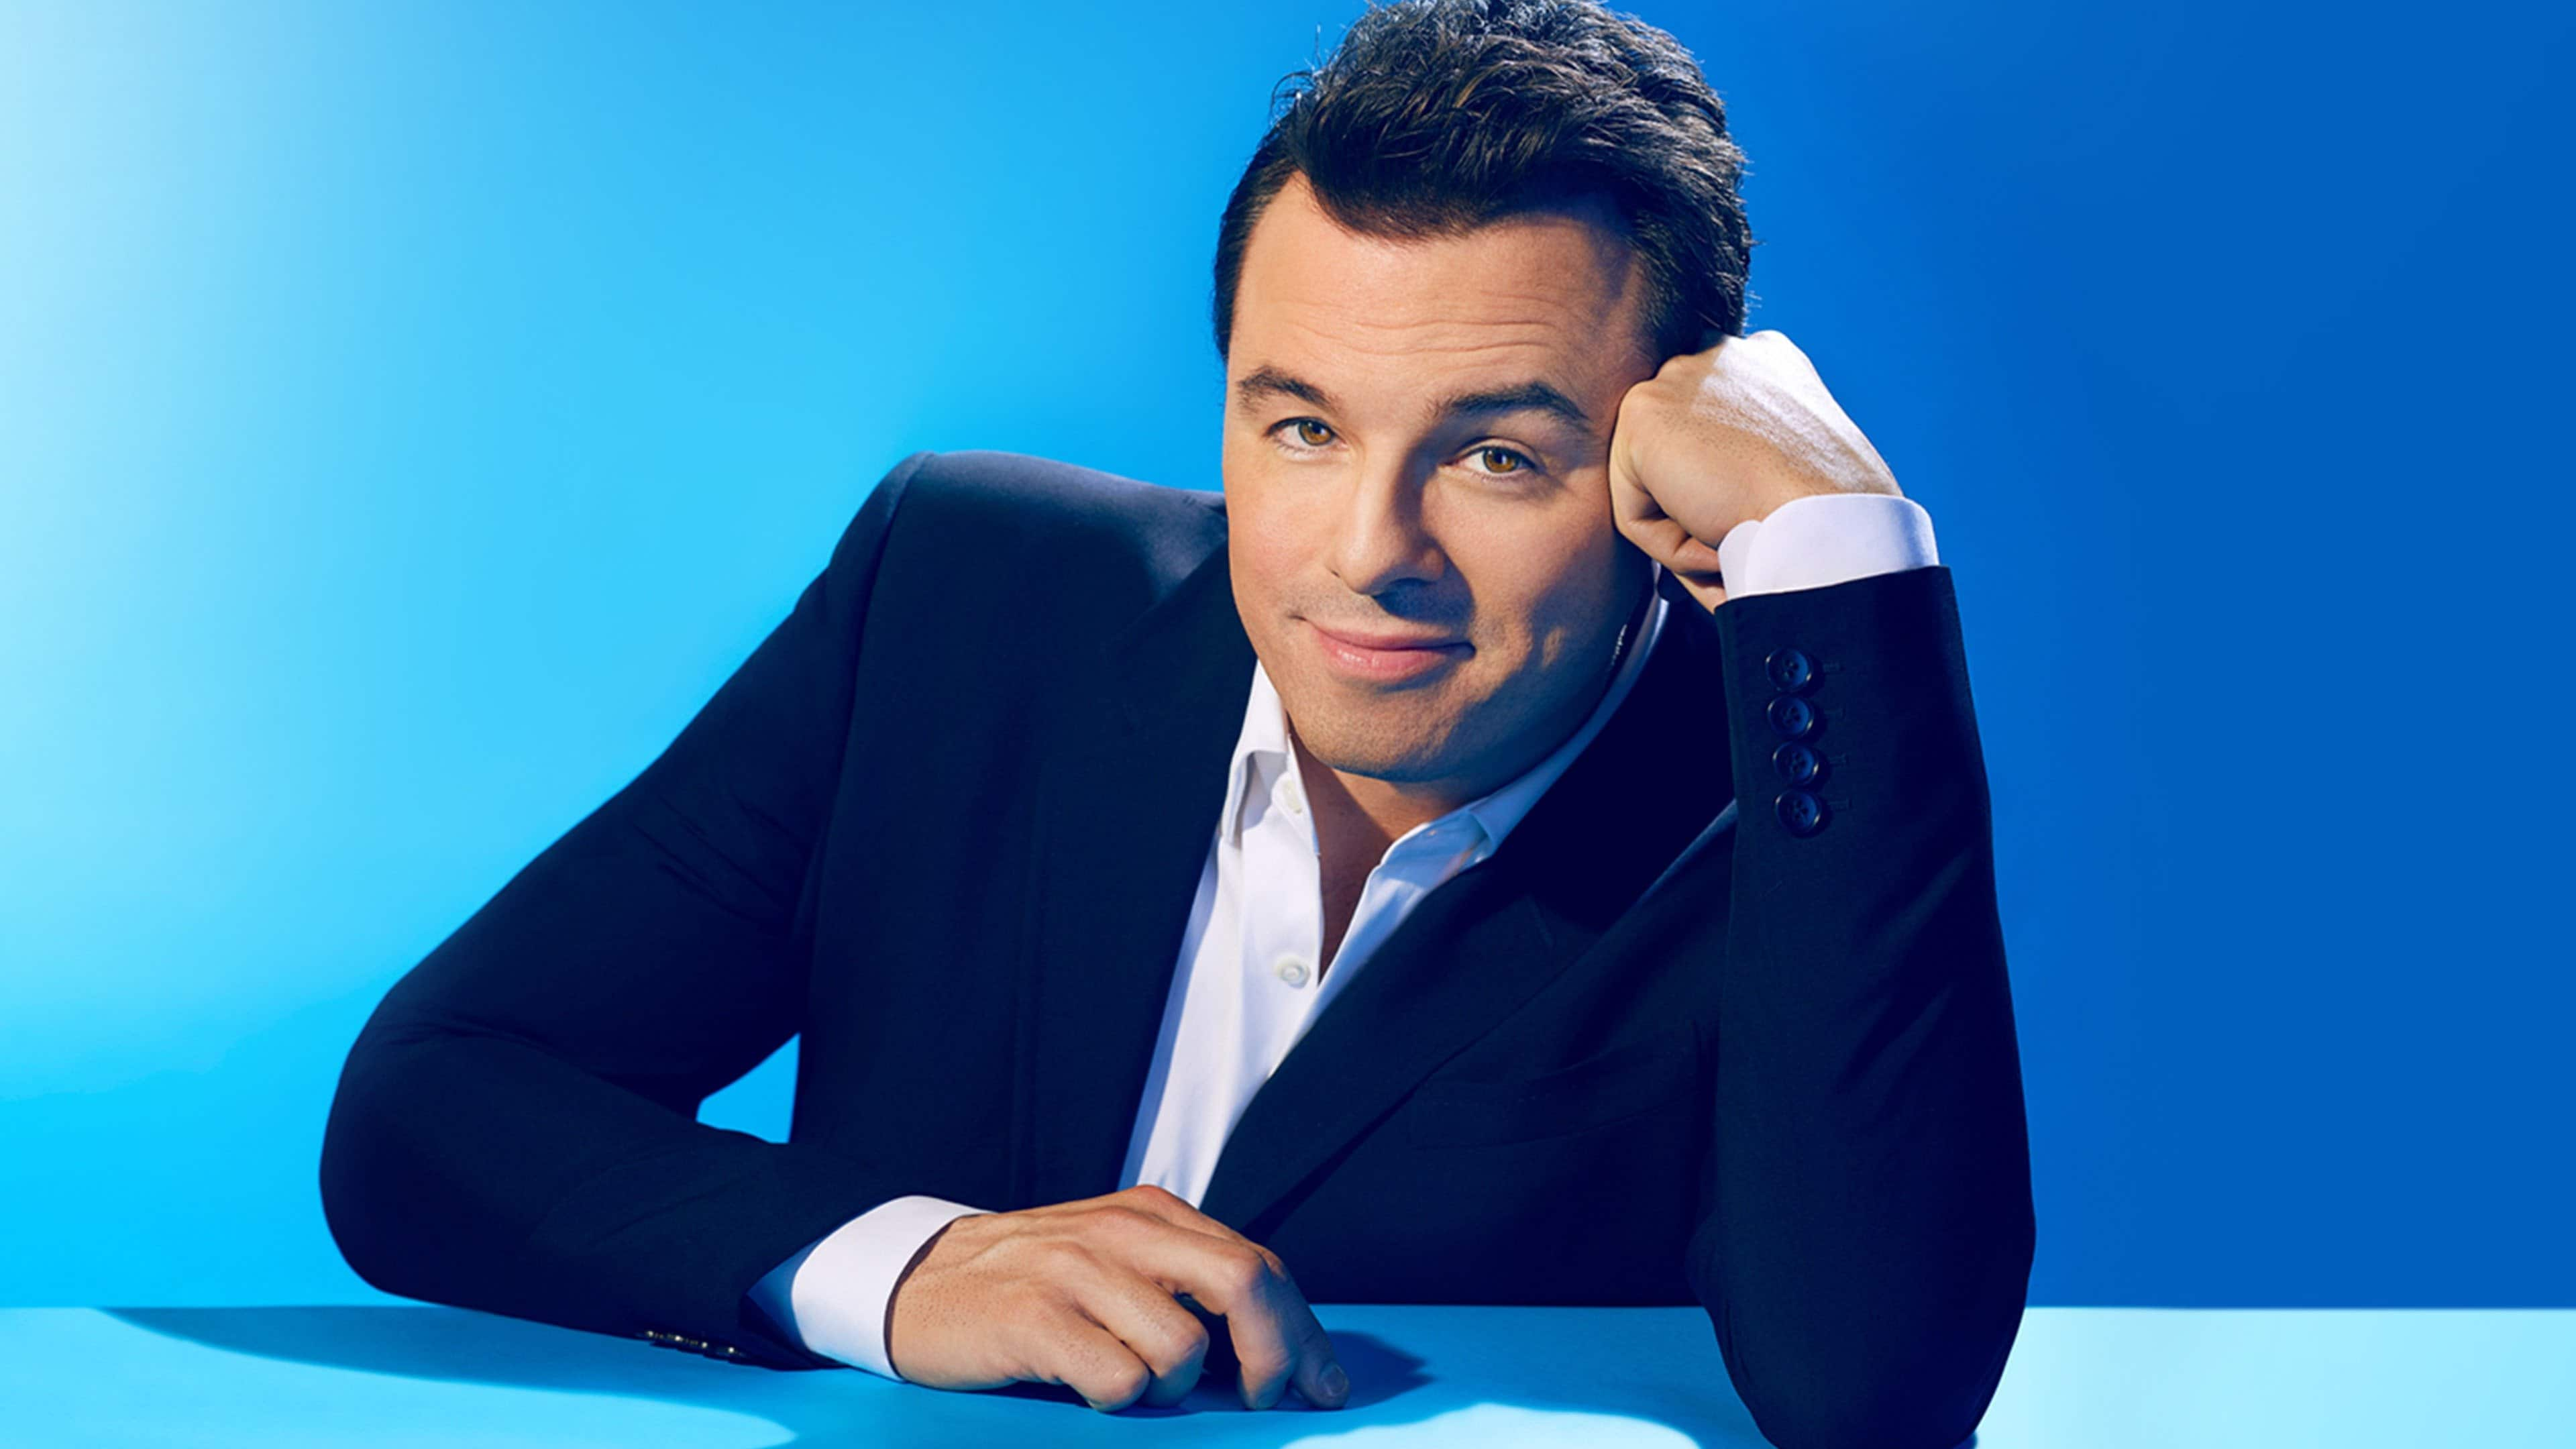 The At-Home Variety Show Featuring Seth MacFarlane